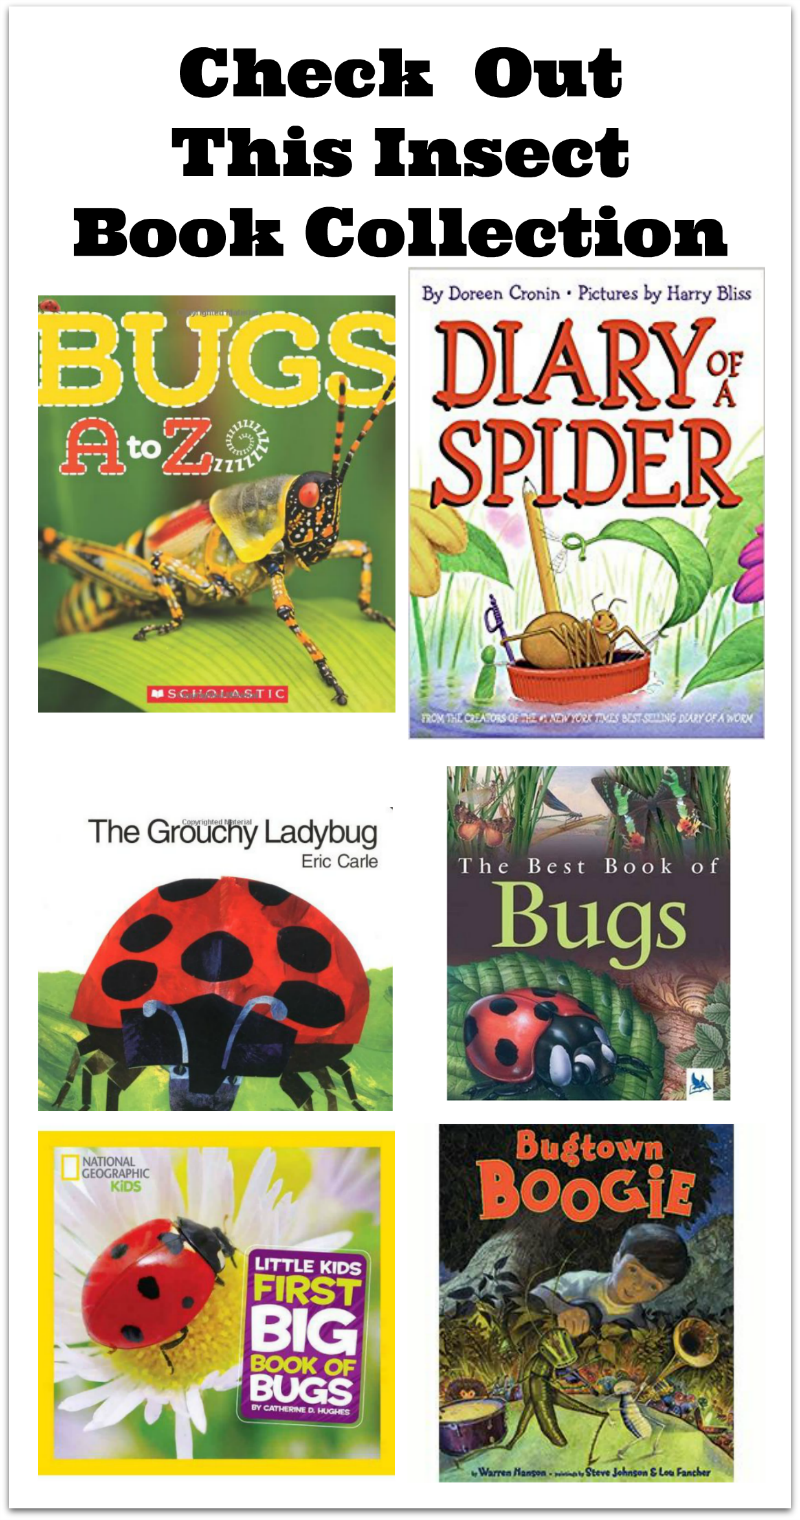 Check Out This Insect Book Collection